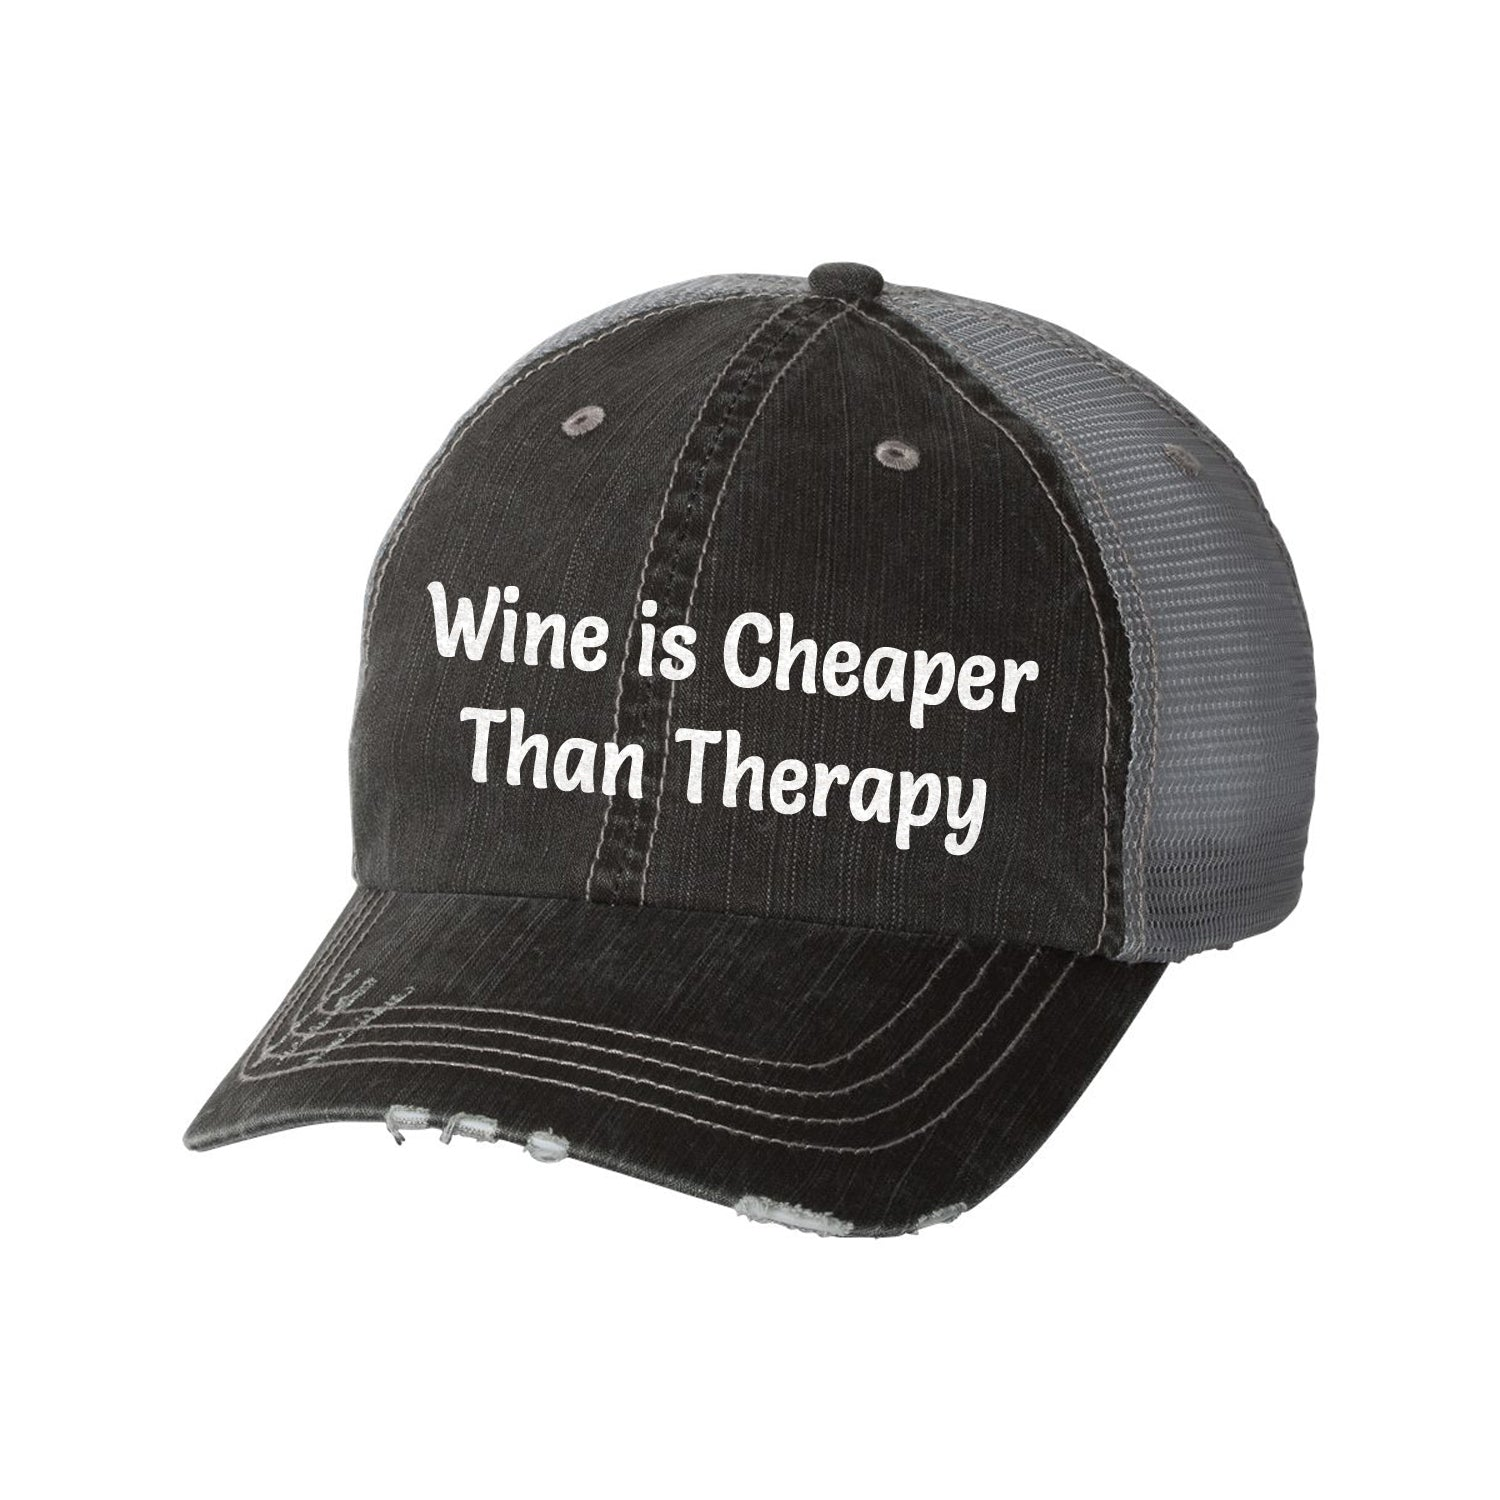 Wine is Cheaper Than Therapy Distressed Ladies Trucker Hat